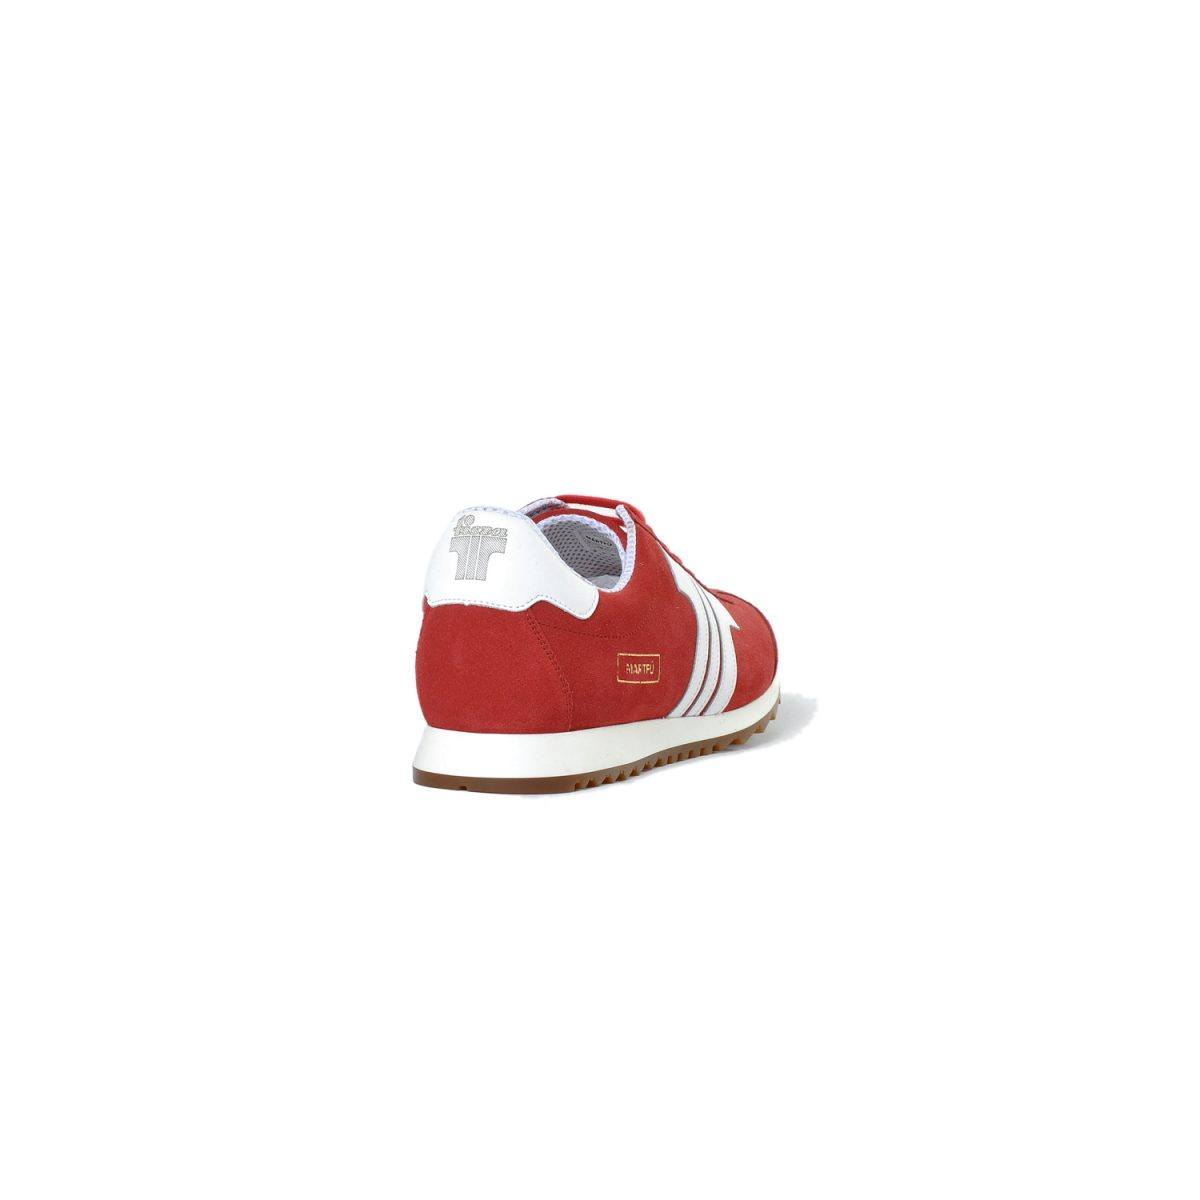 Tisza shoes - Martfű - Red-white